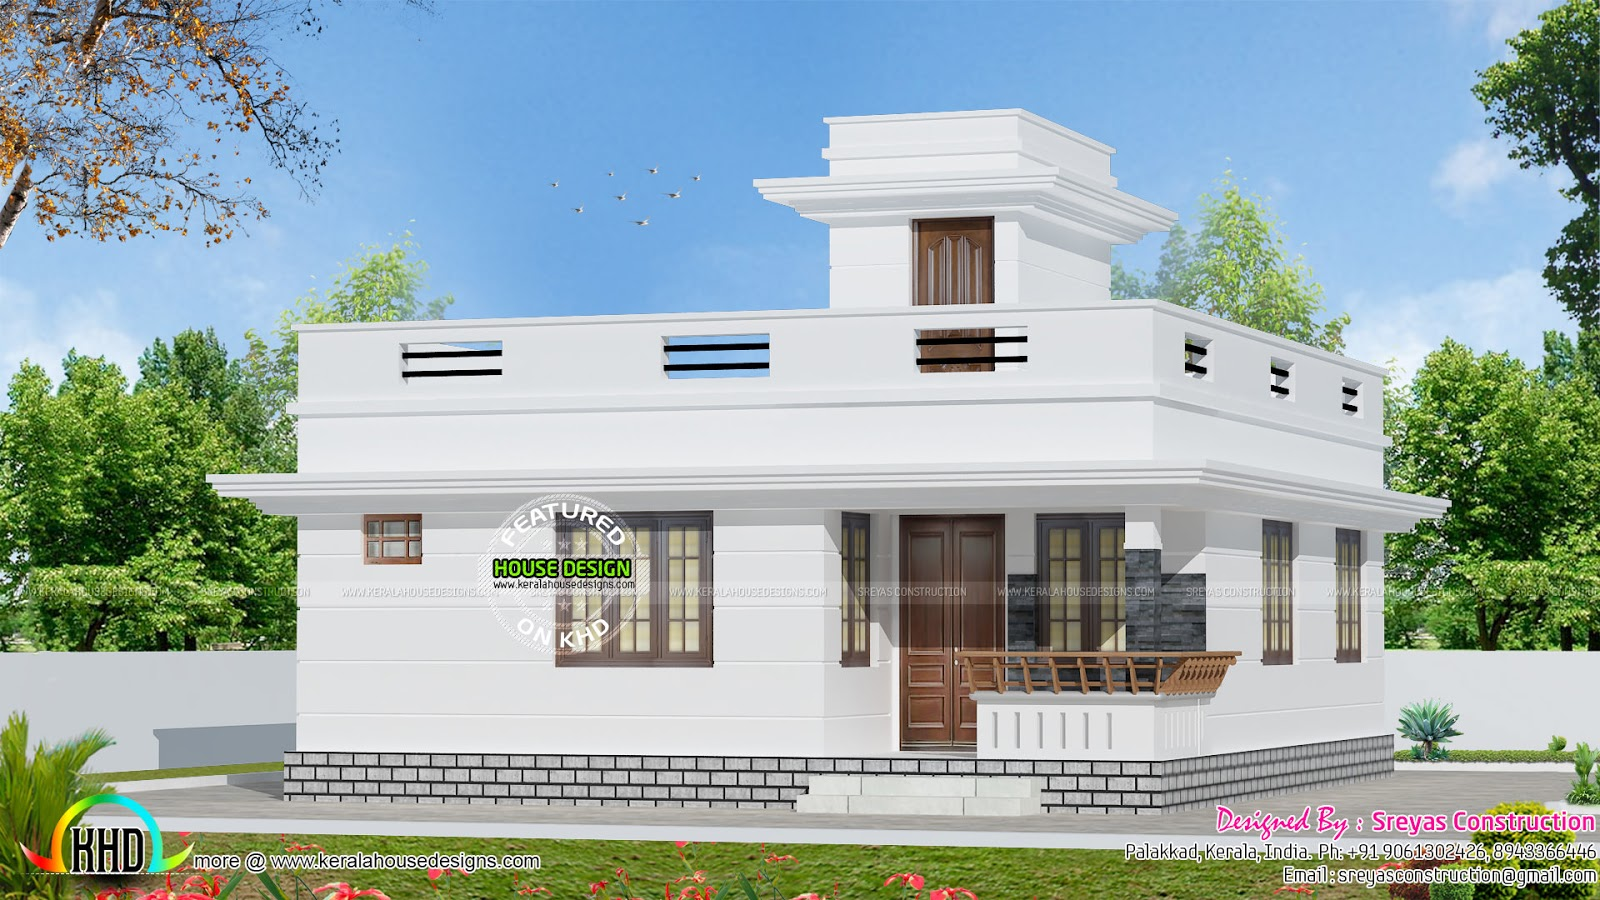 882 sq ft small house architecture kerala home design for Design architecture house